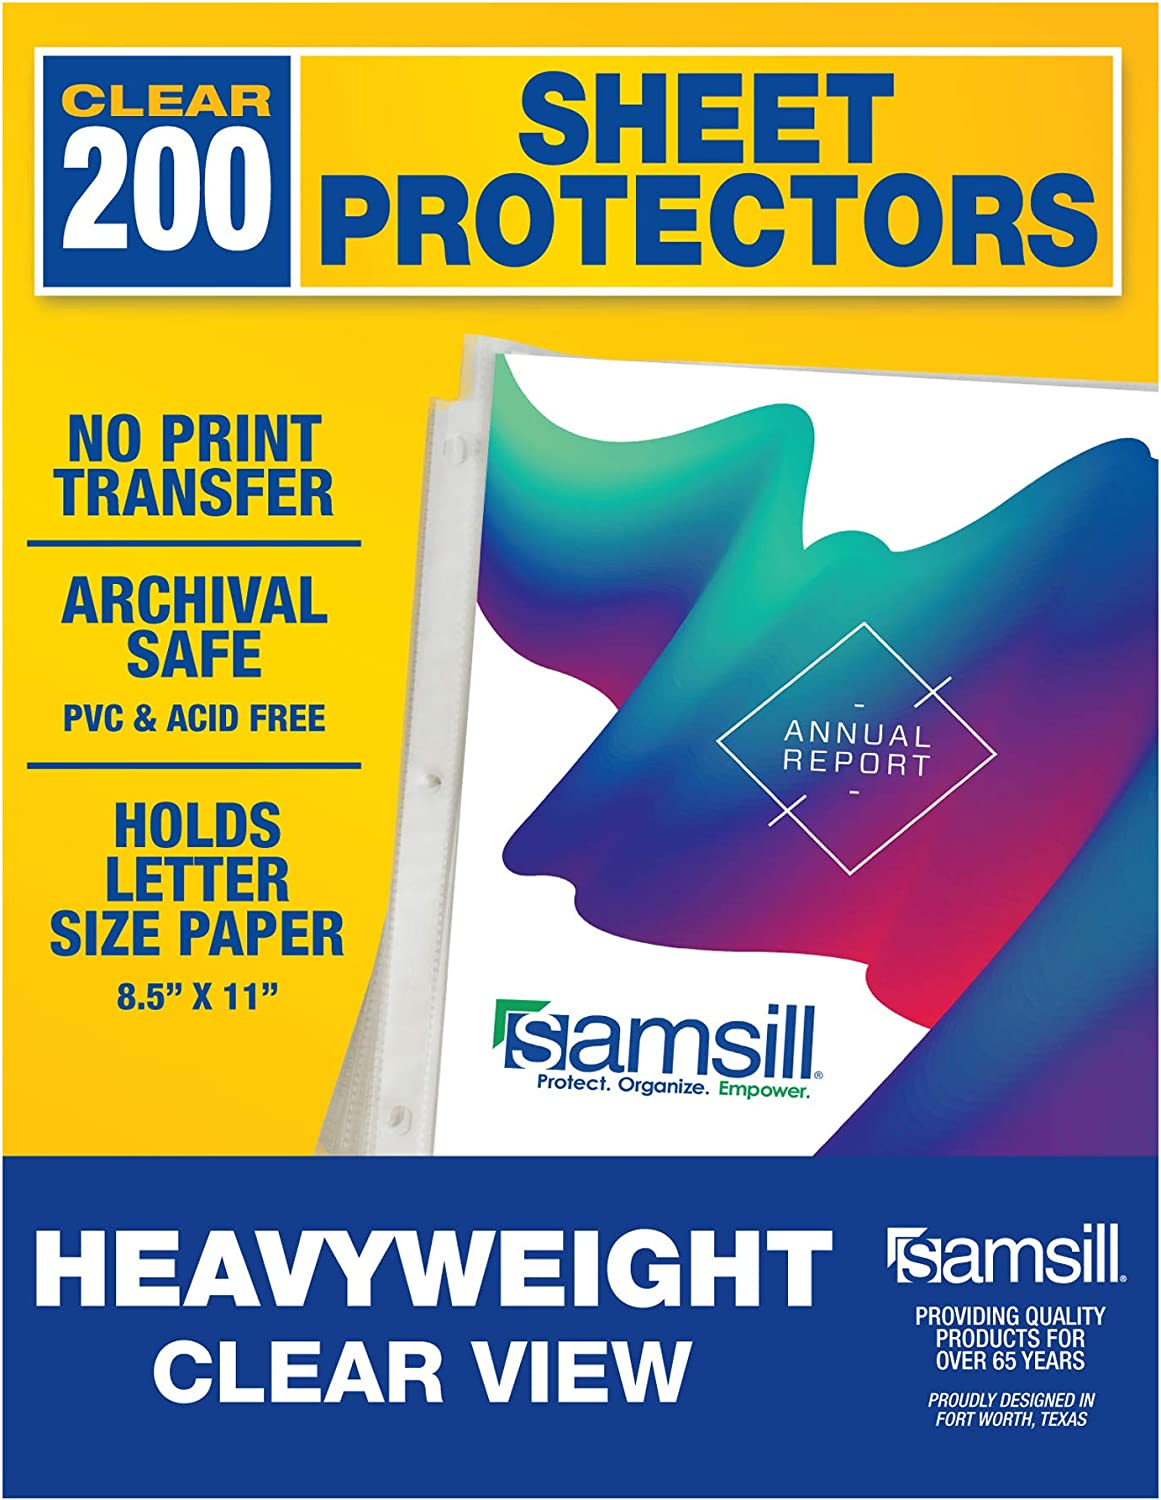 Samsill 200 Pack Heavyweight Clear Sheet Protectors for 3 Ring Binder, Archival Safe, Top Load 8.5 x 11 Inches : Office Products